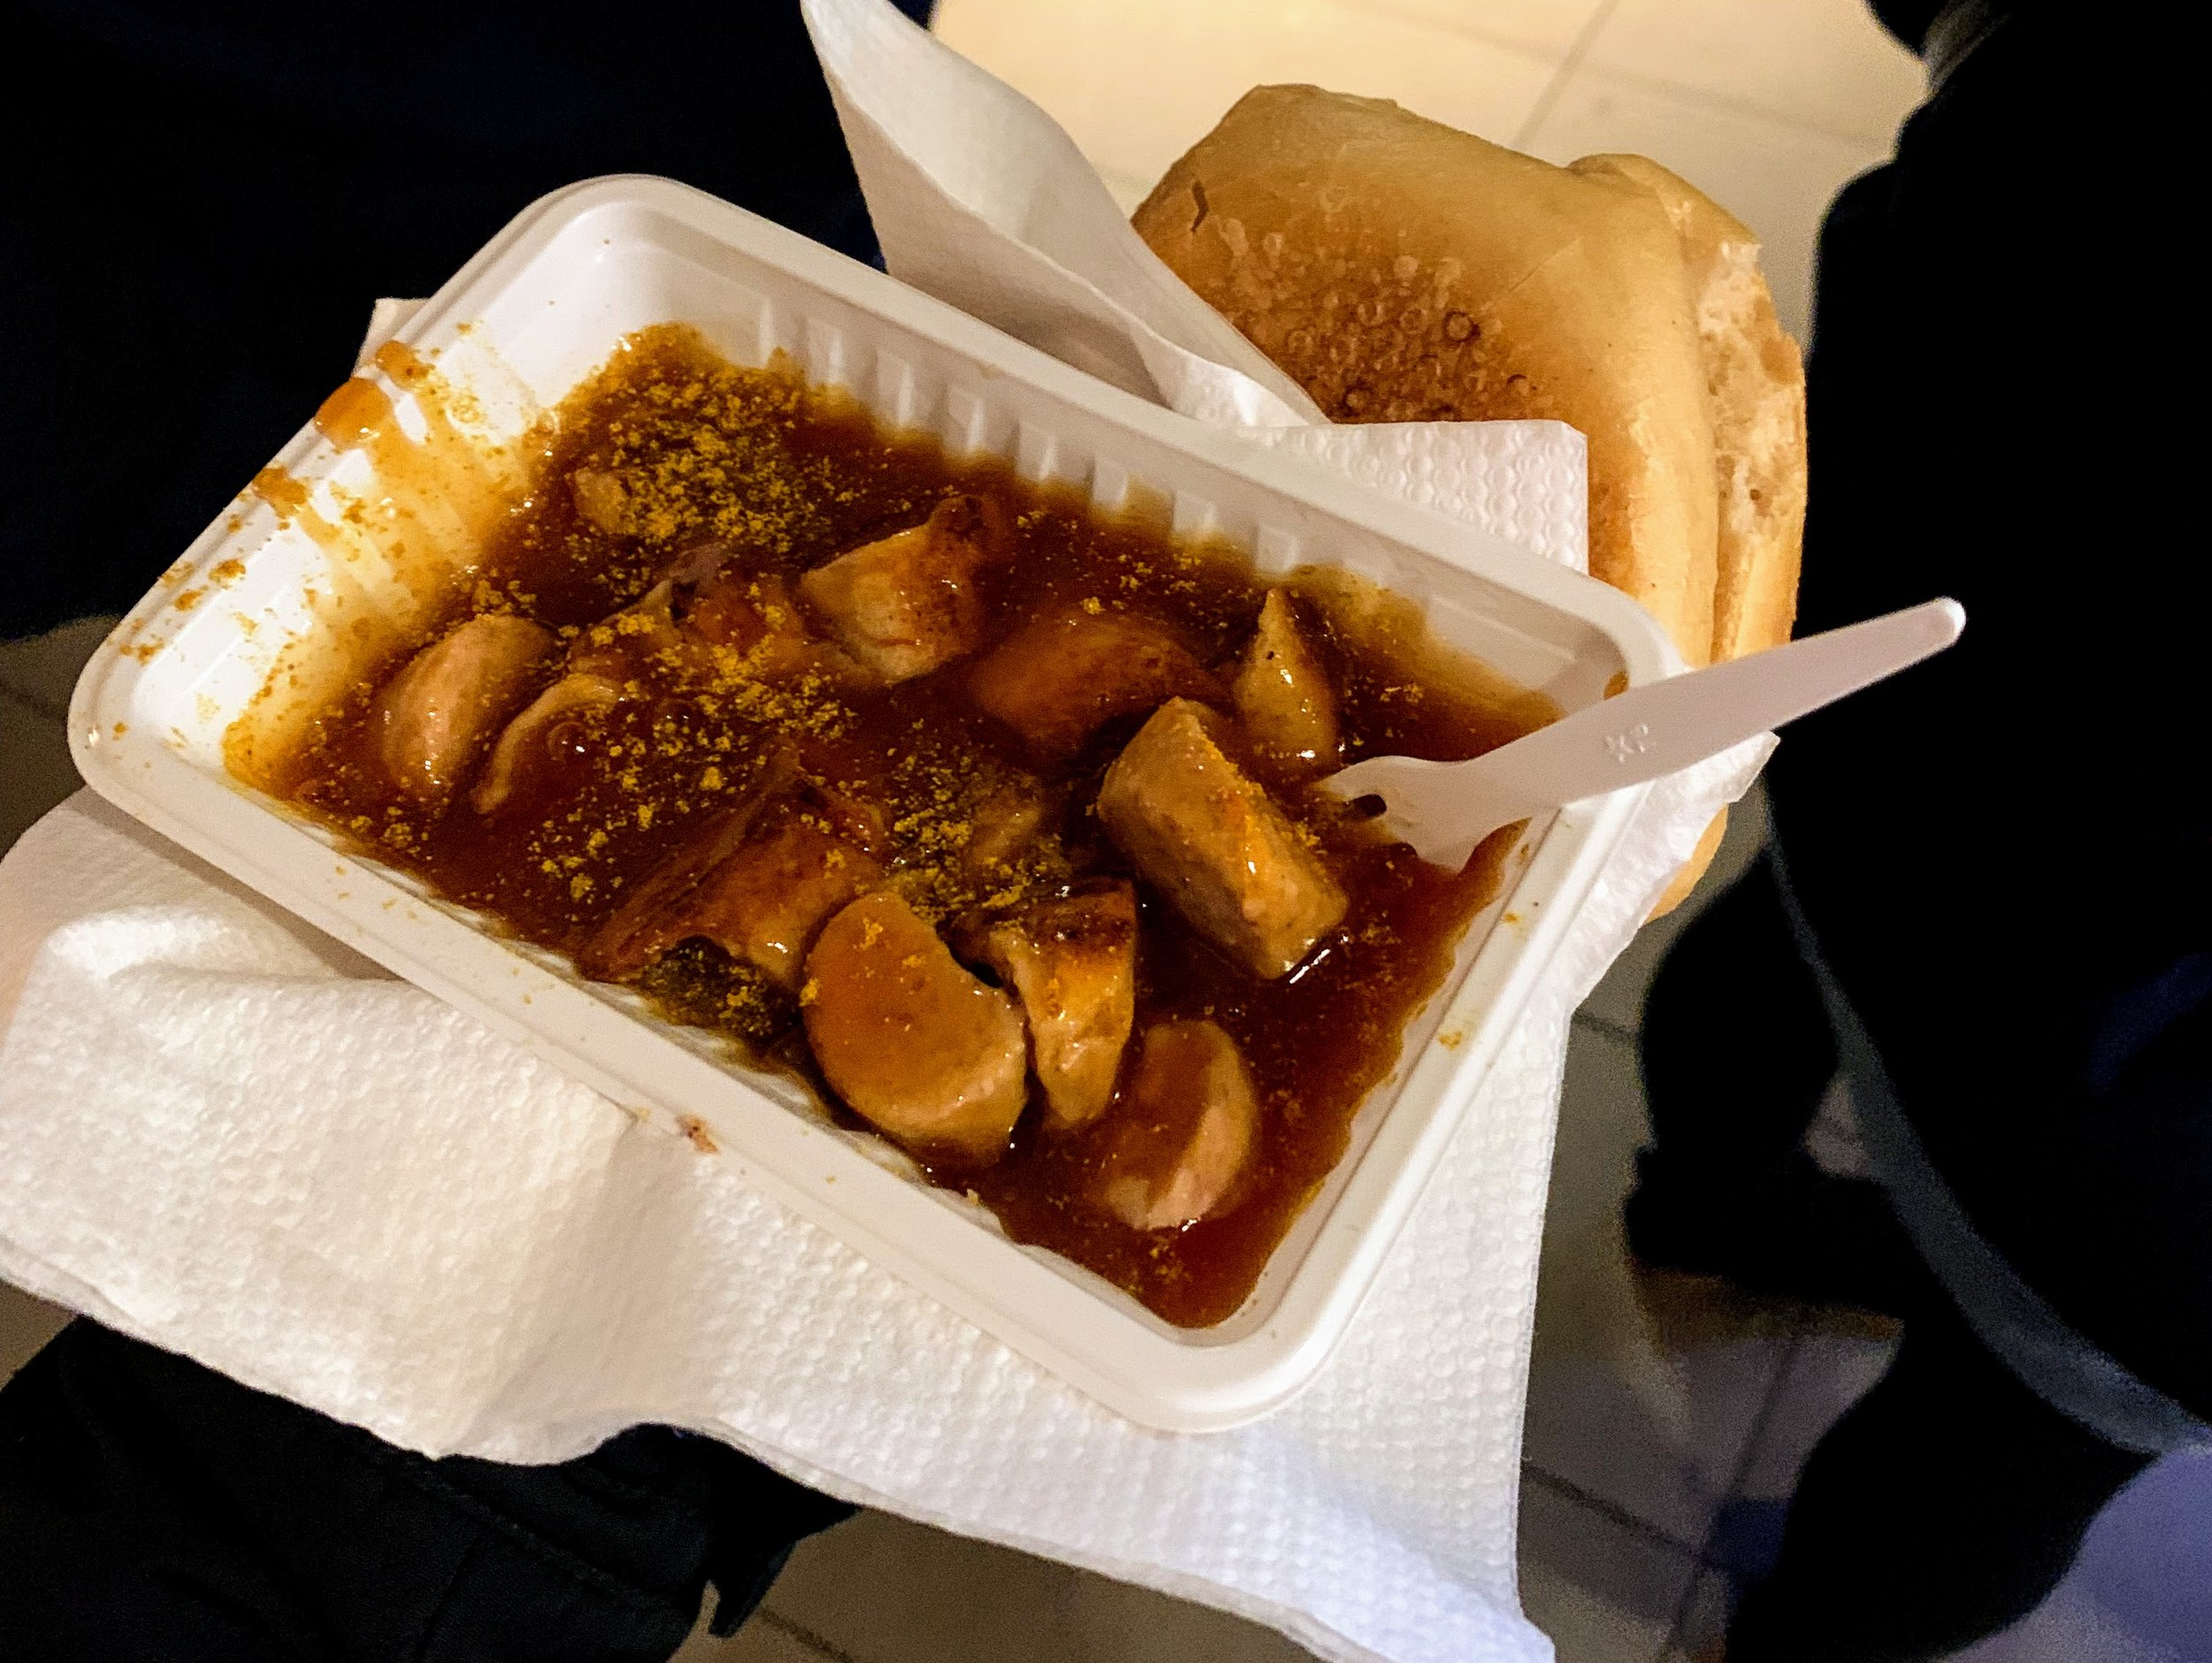 Currywurst from a street food stall